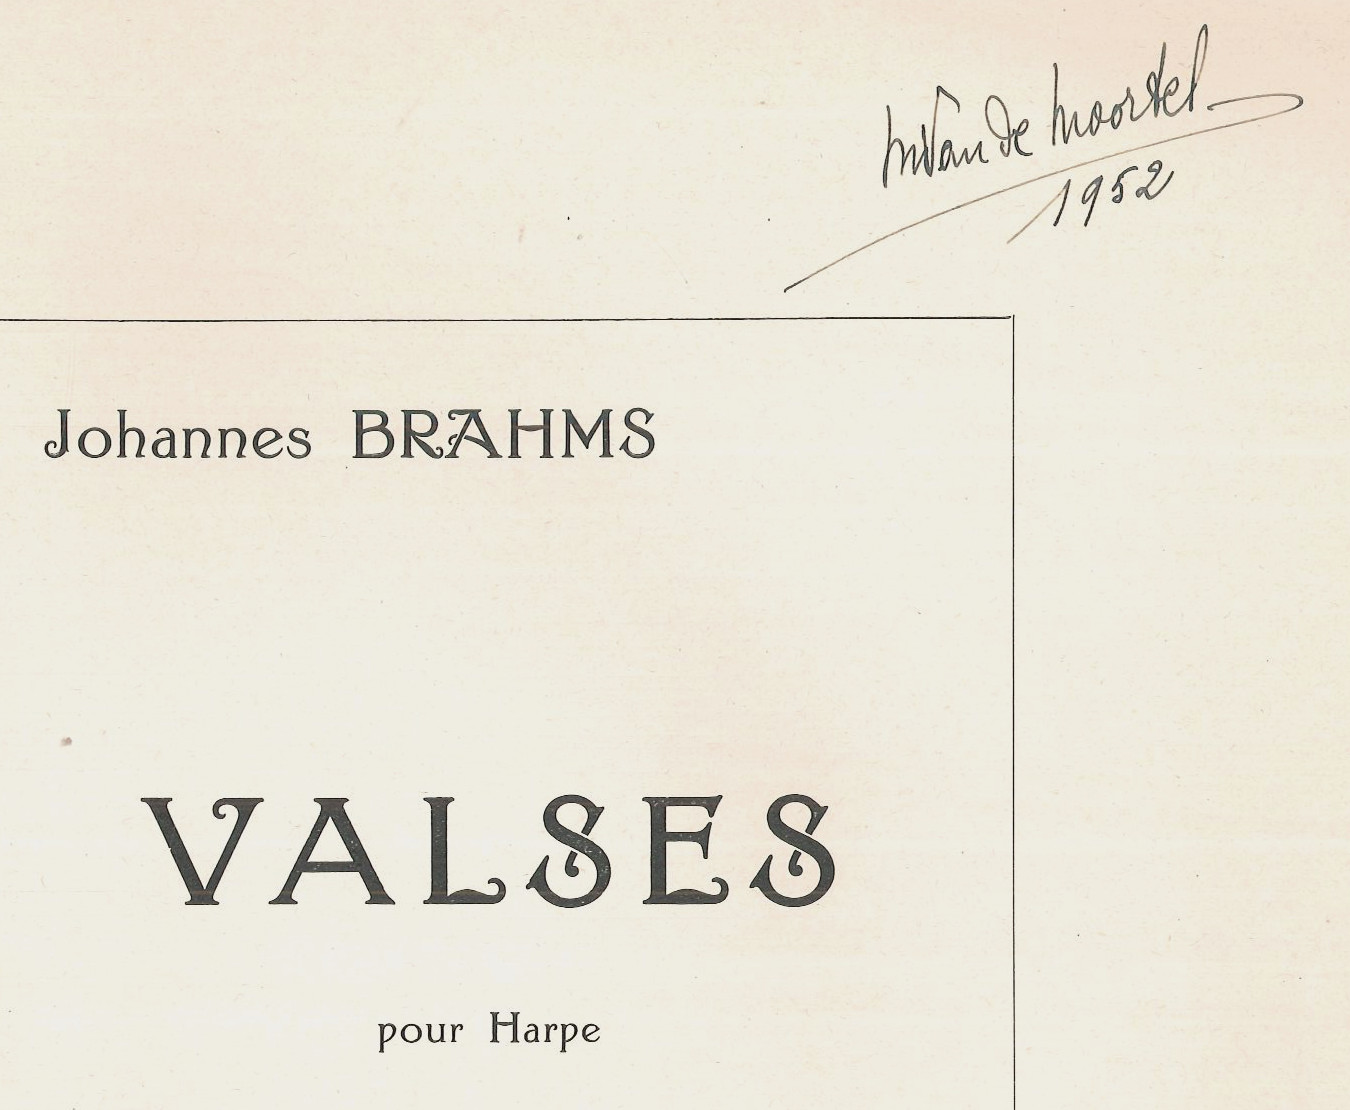 Waltzes by Brahms, transcribed for harp by Lautemann, from the collection Van de Moortel. E03151.